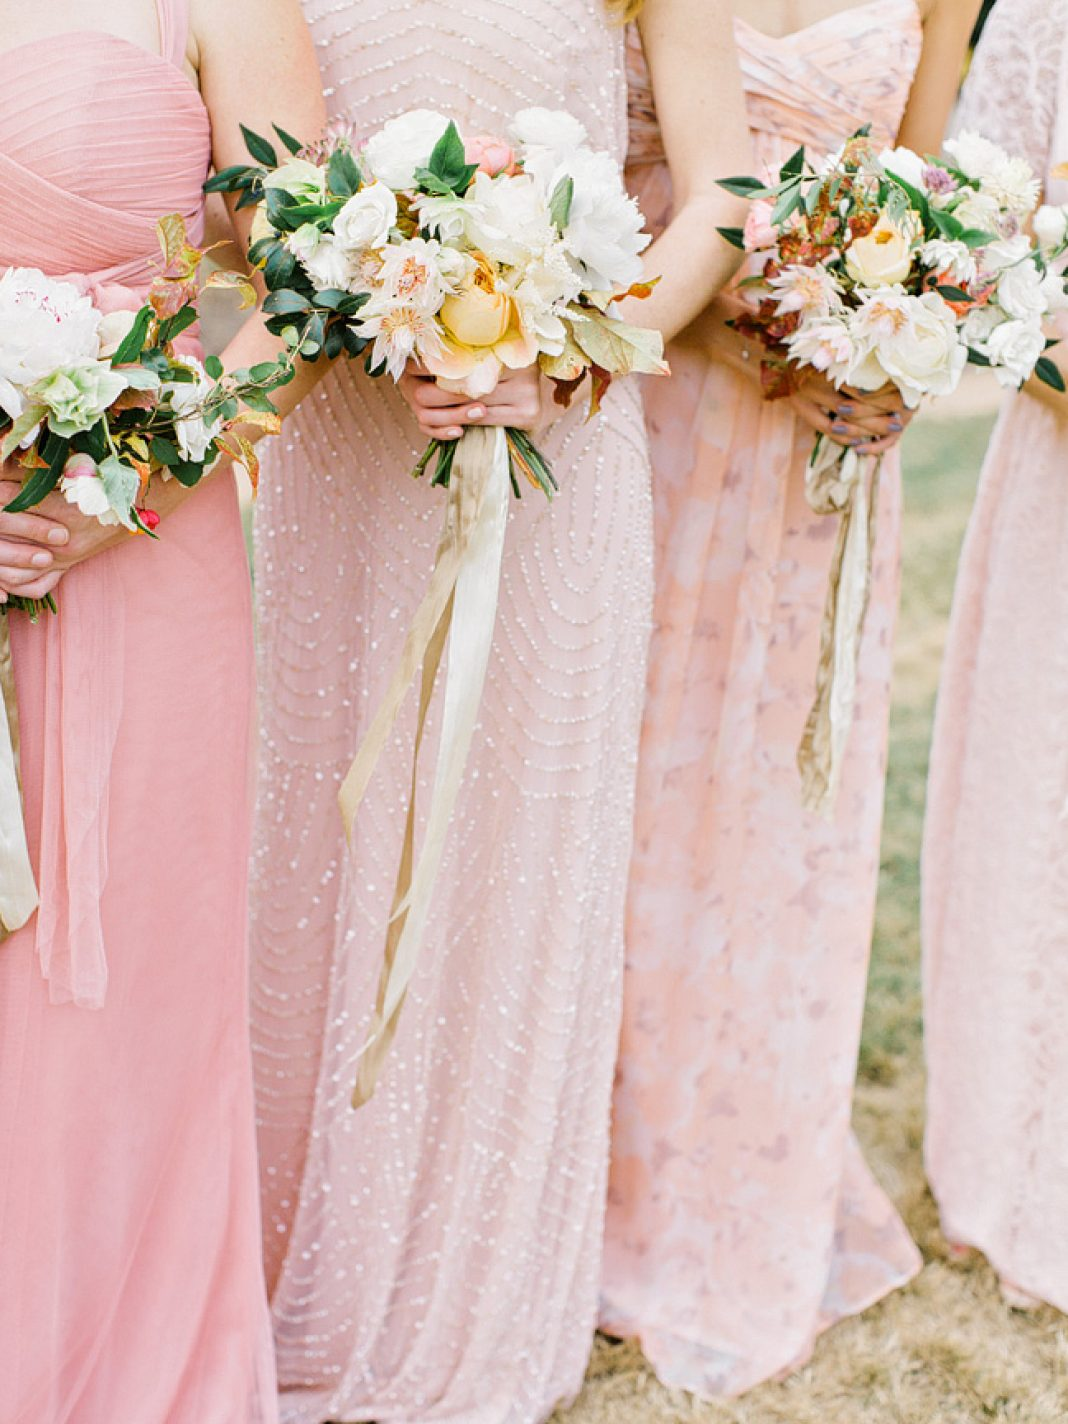 The Chancey Charm Wedding Planners are sharing their top tips for showing your bridesmaids some extra love and making them feel special + appreciated during the wedding planning process. #bridesmaids #weddingplanningtips #Chanceycharm